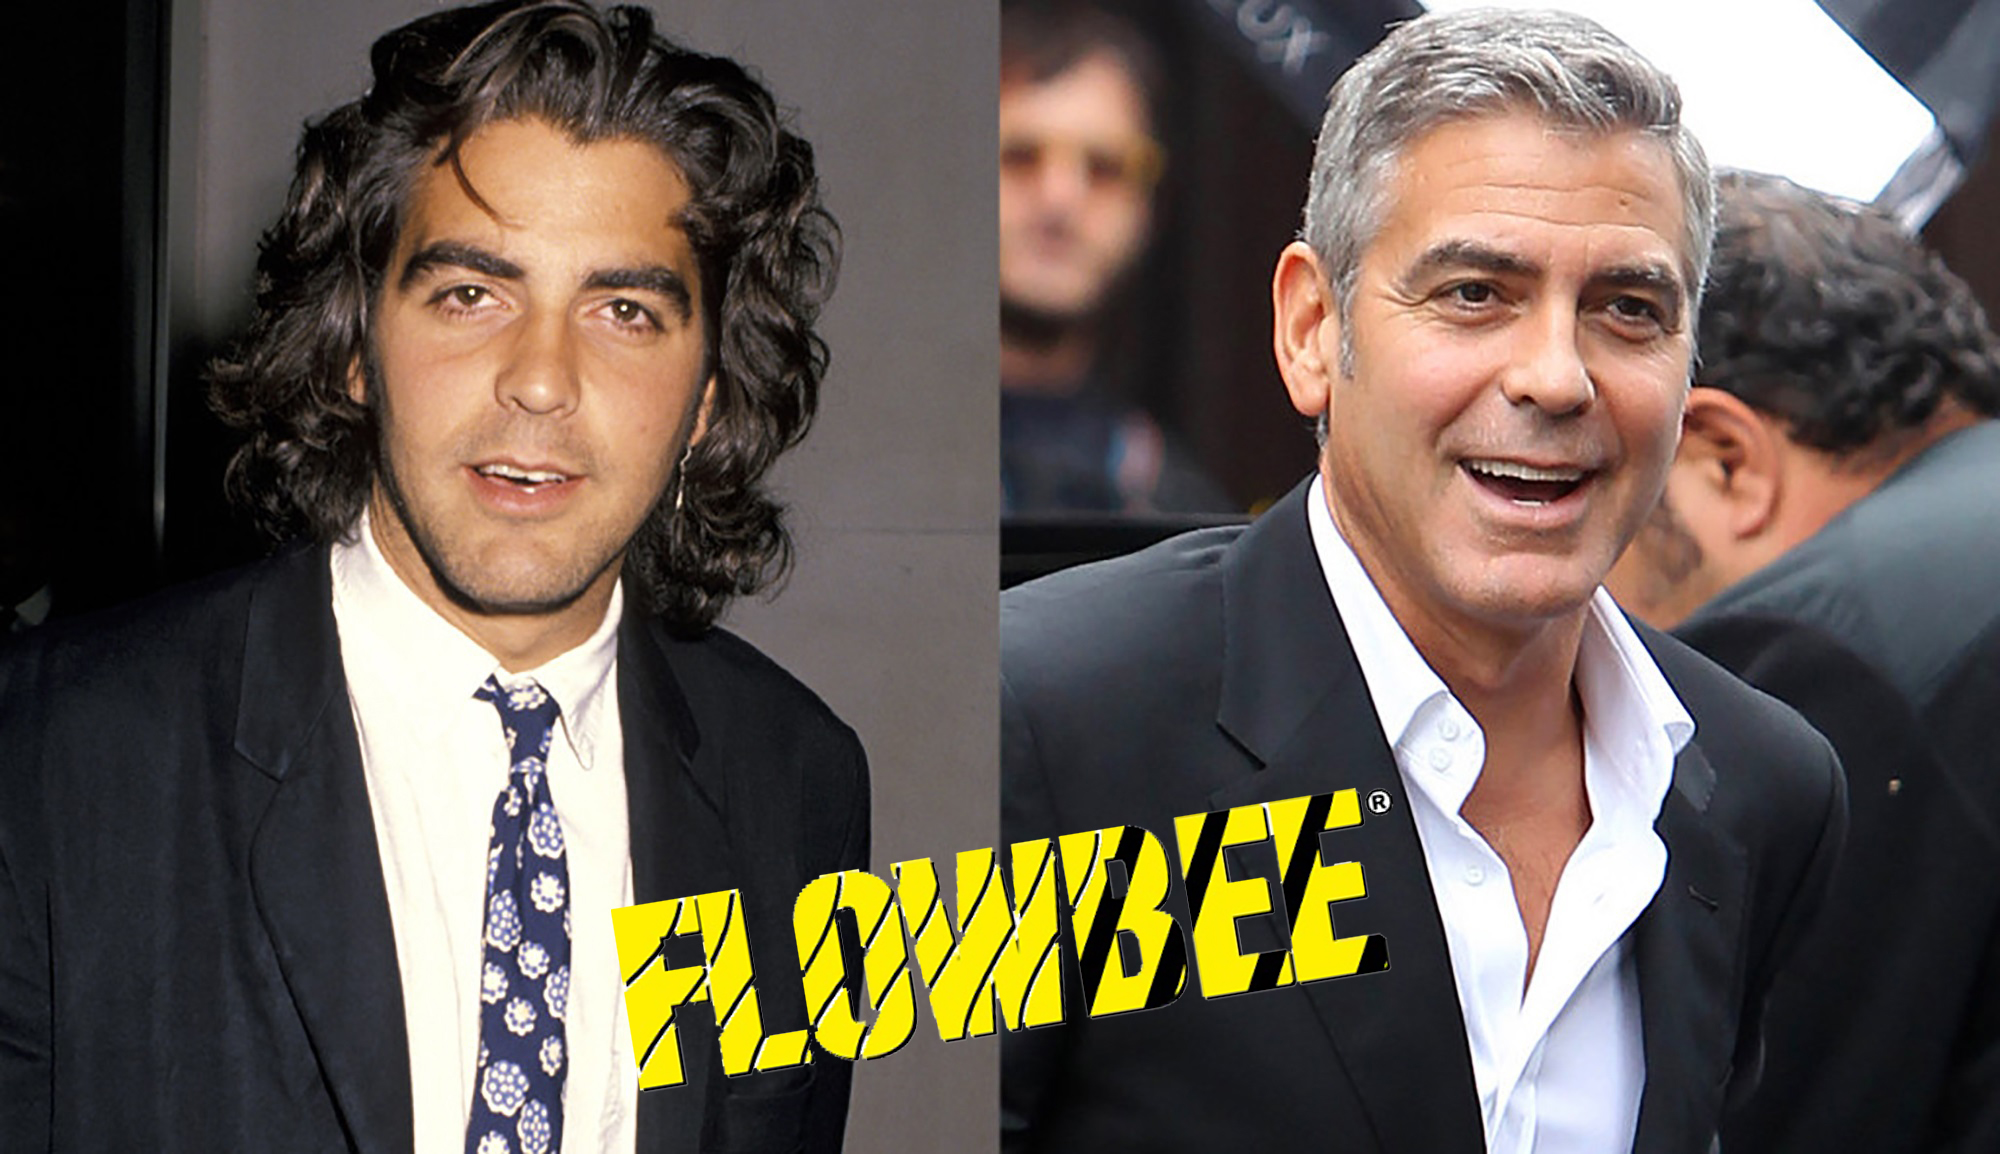 Shock! Does George Clooney cut his own hair with Flowbee?